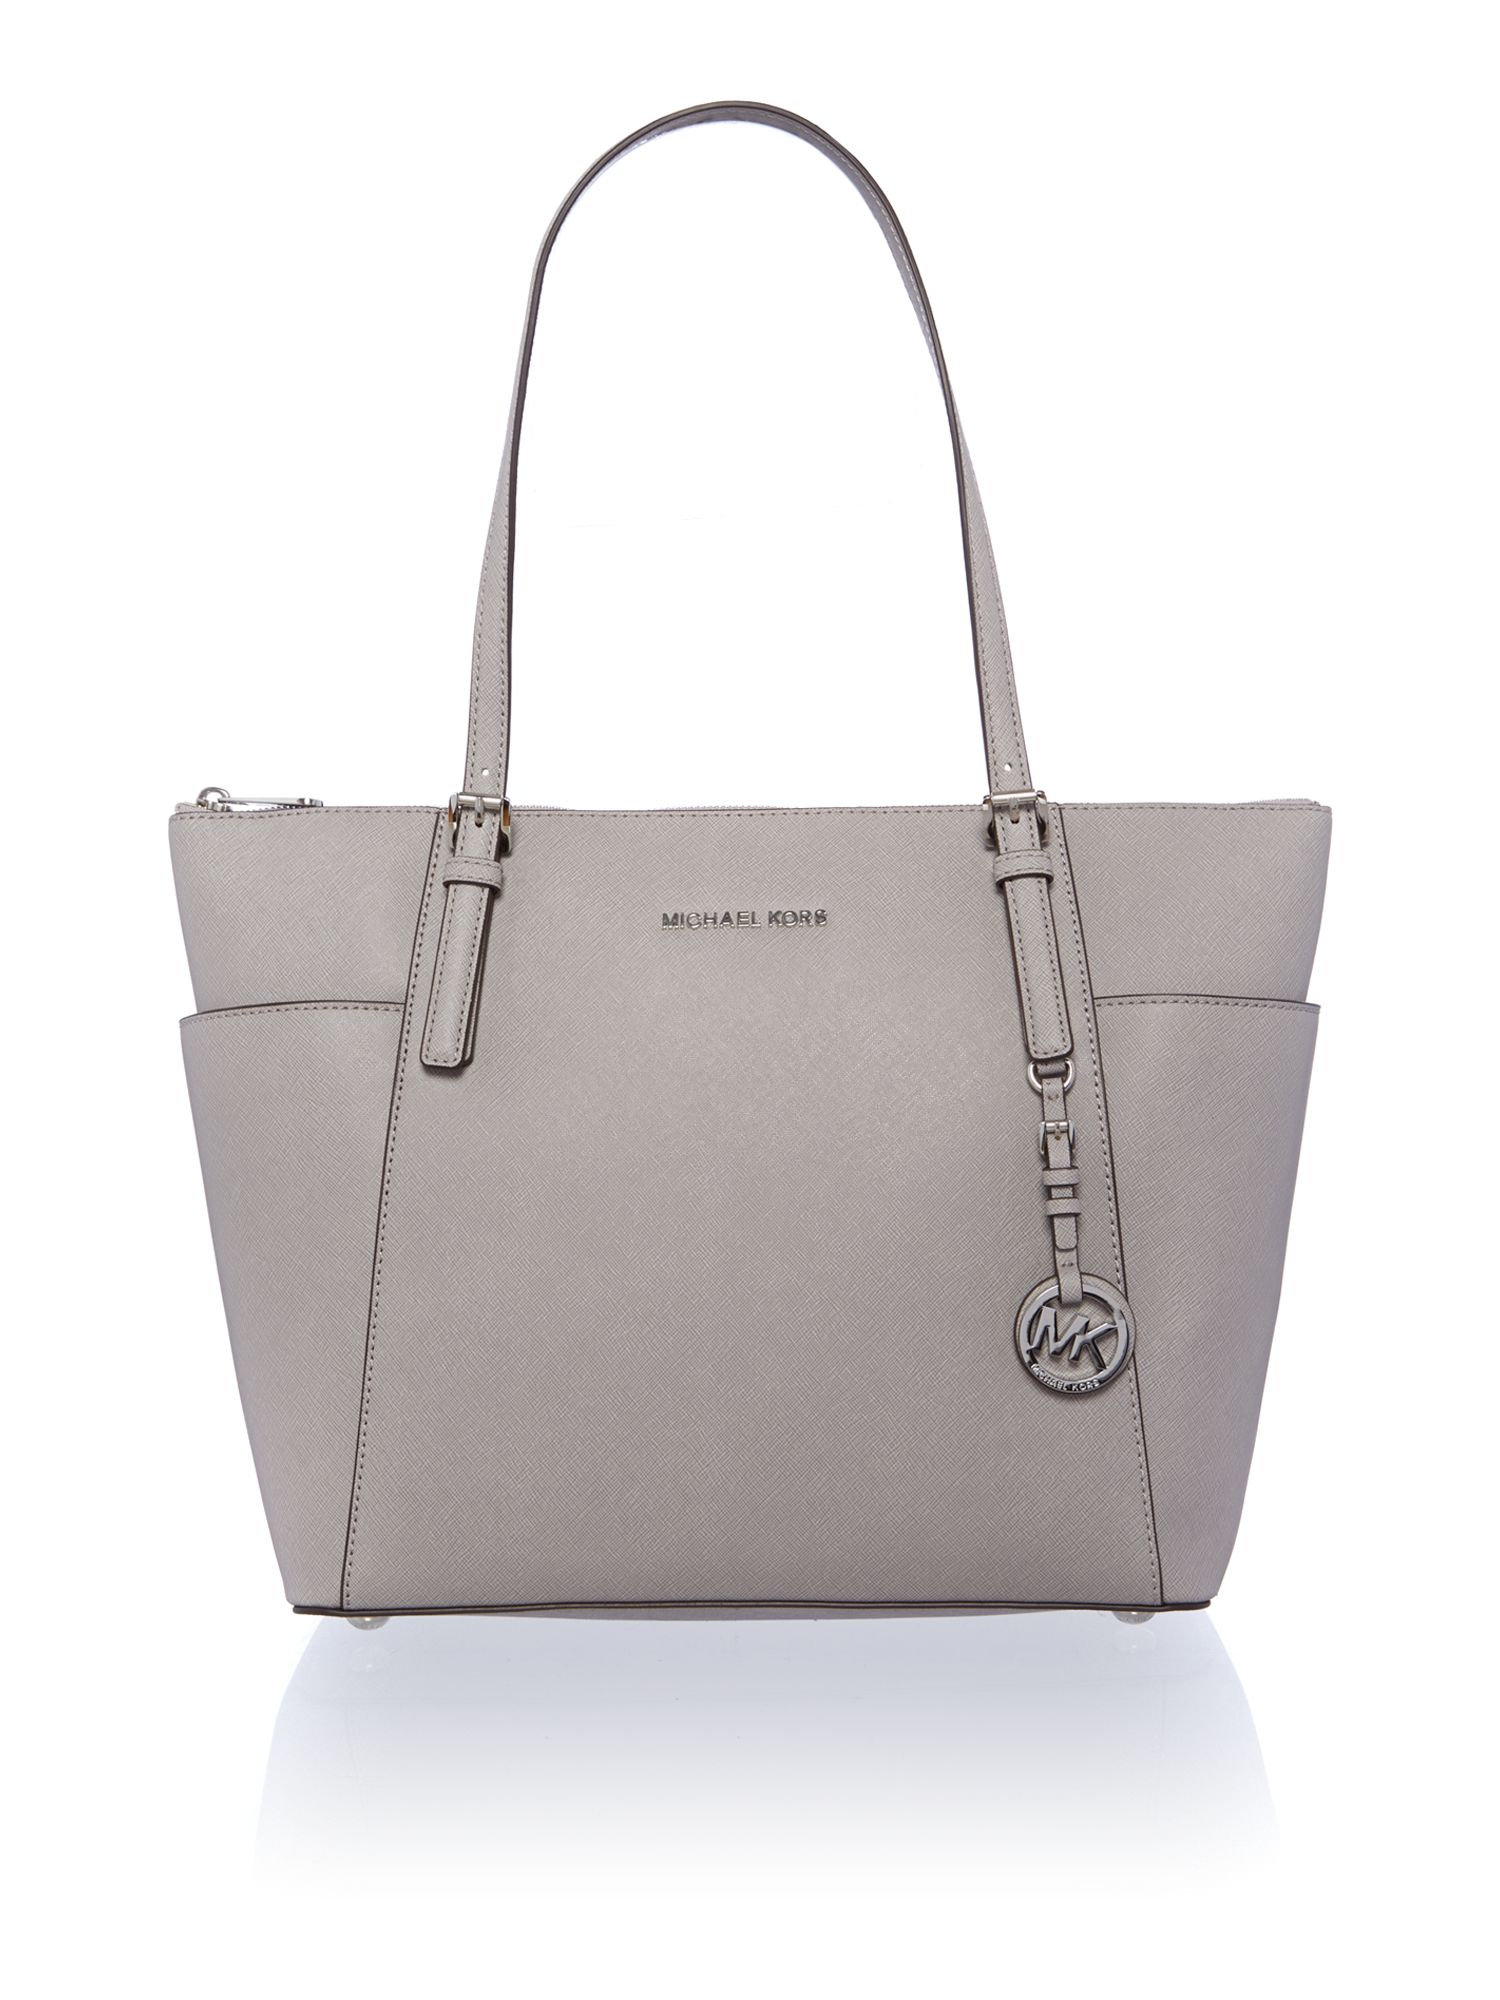 a93b5eb6725c41 Michael Kors Grey Tote Bag | Stanford Center for Opportunity Policy ...